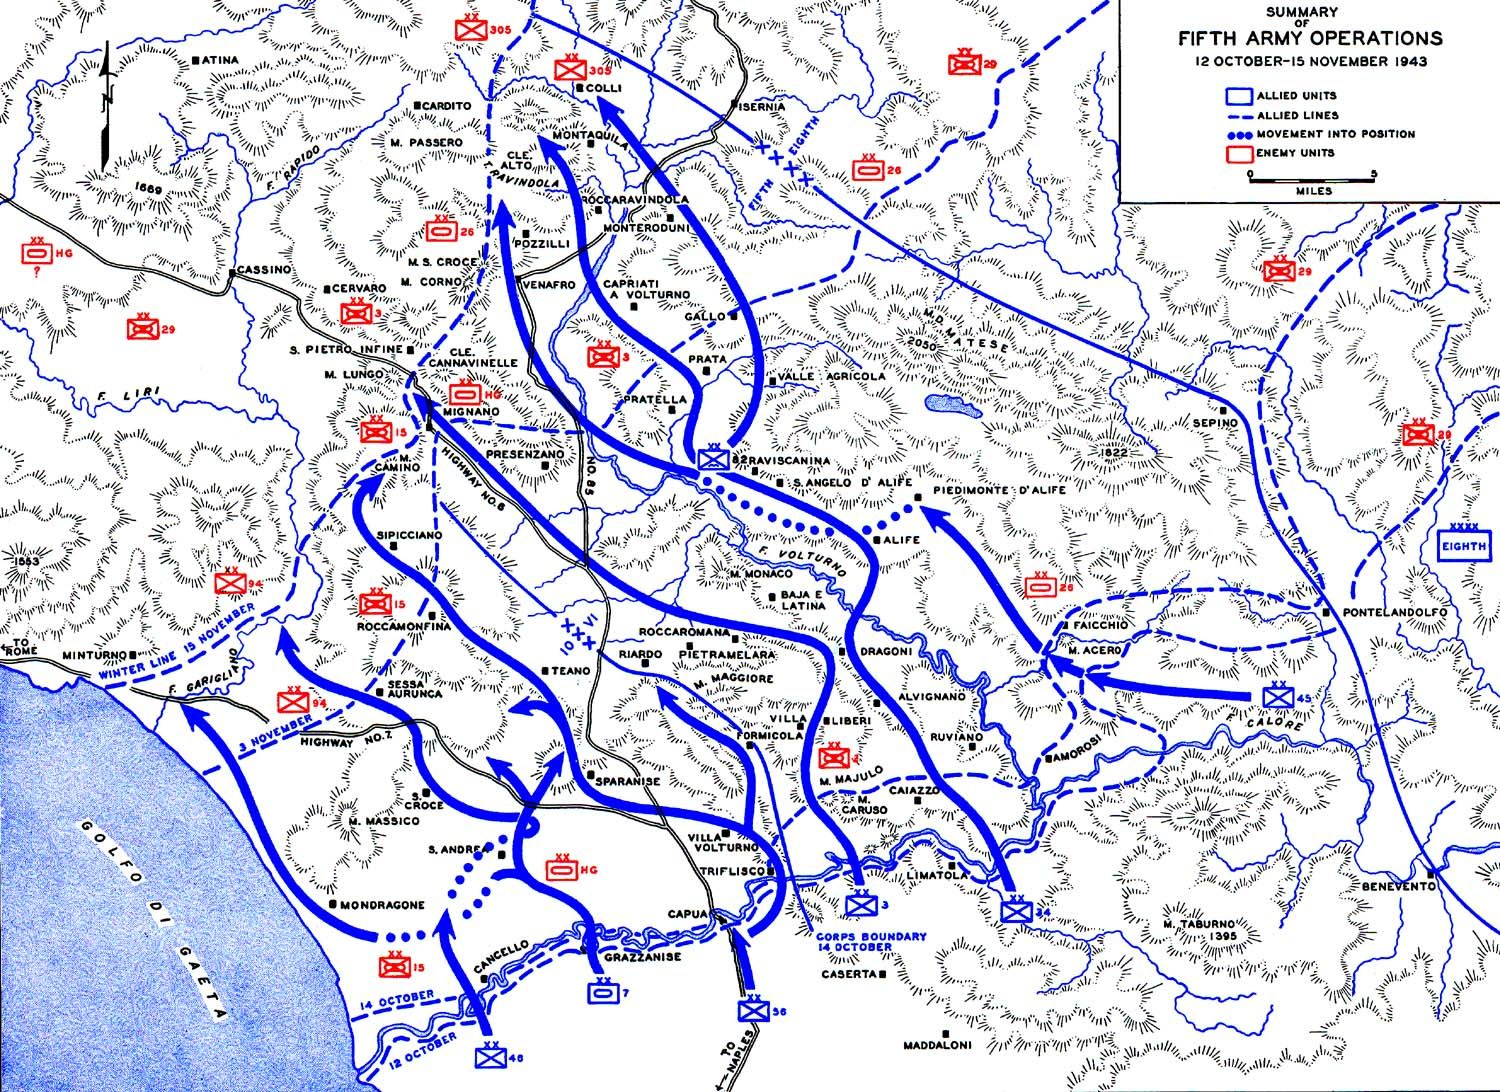 Show A Map Of Italy.Map Map Showing Us 5th Army Advances In Italy 12 Oct 15 Nov 1943